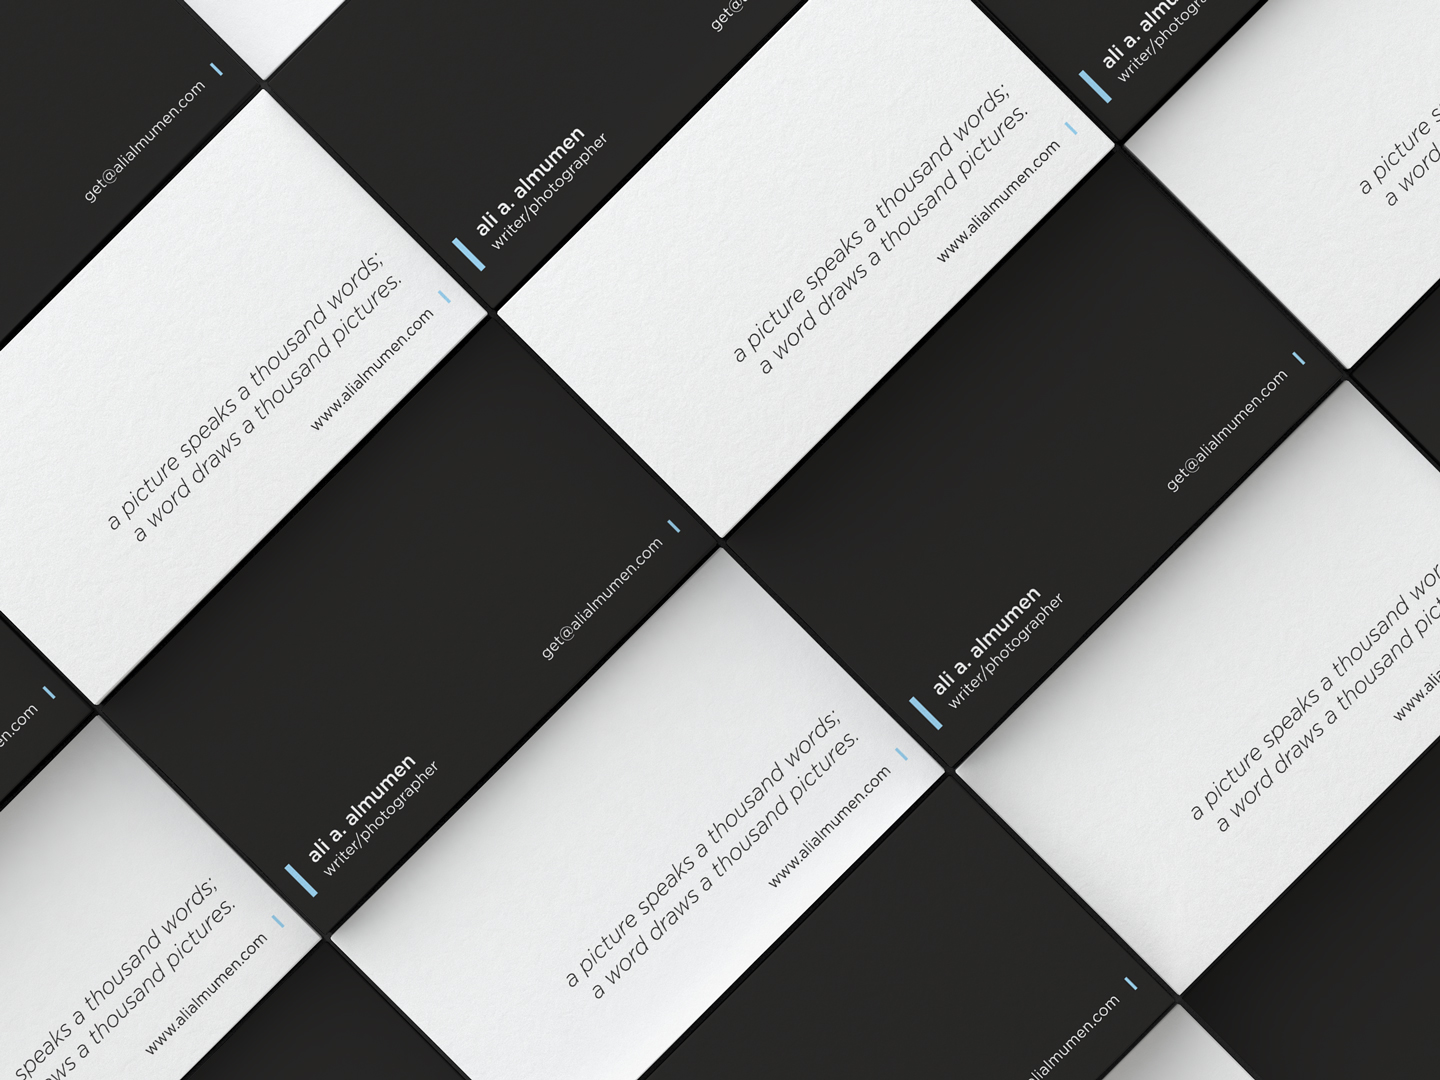 160 Professional Business Business Card Designs for a Business ...